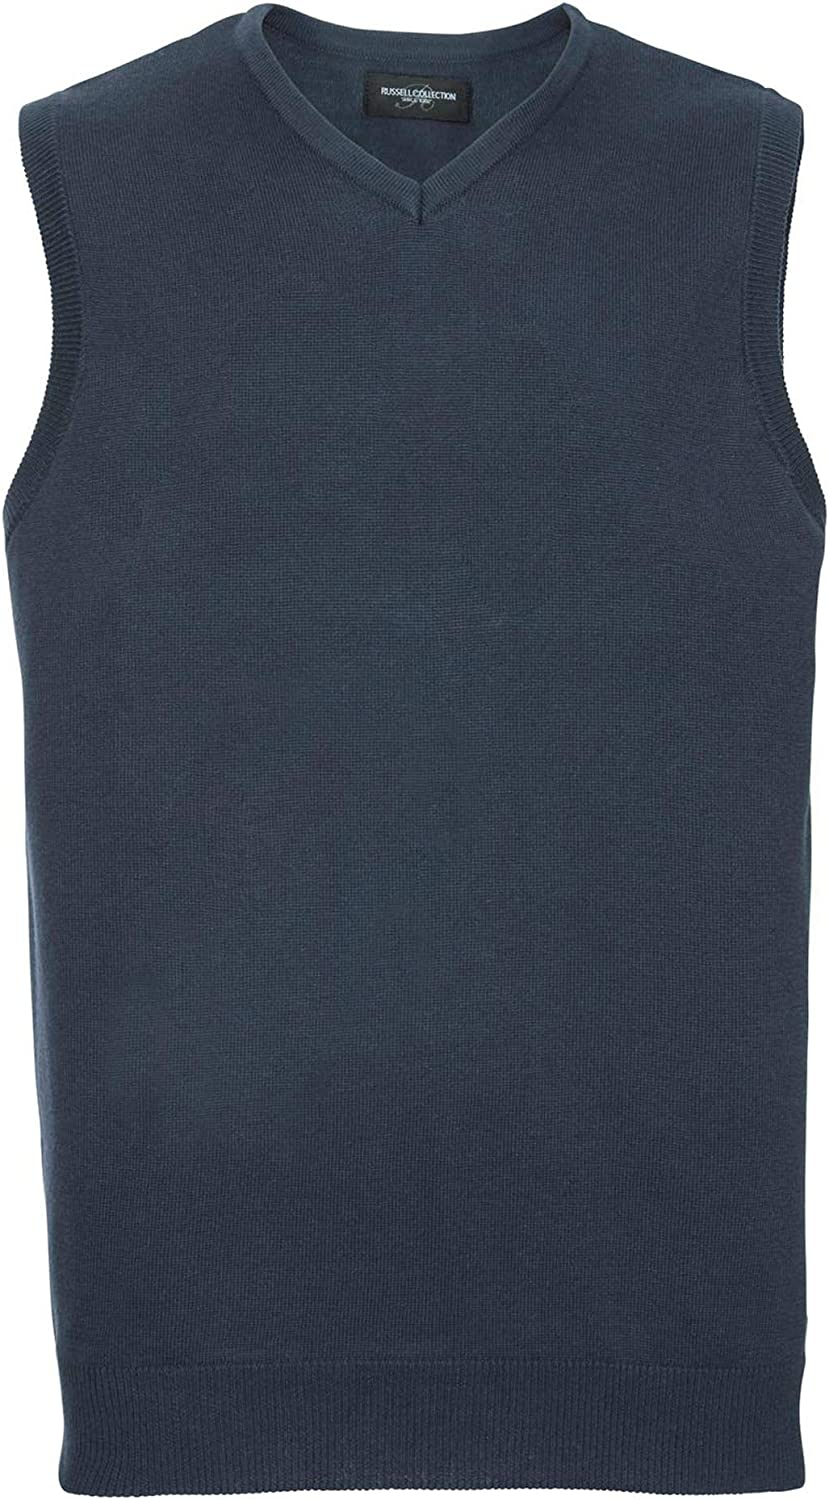 Russell Collection J716M V-Neck Sleeveless Knitted Sweater Blank Plain